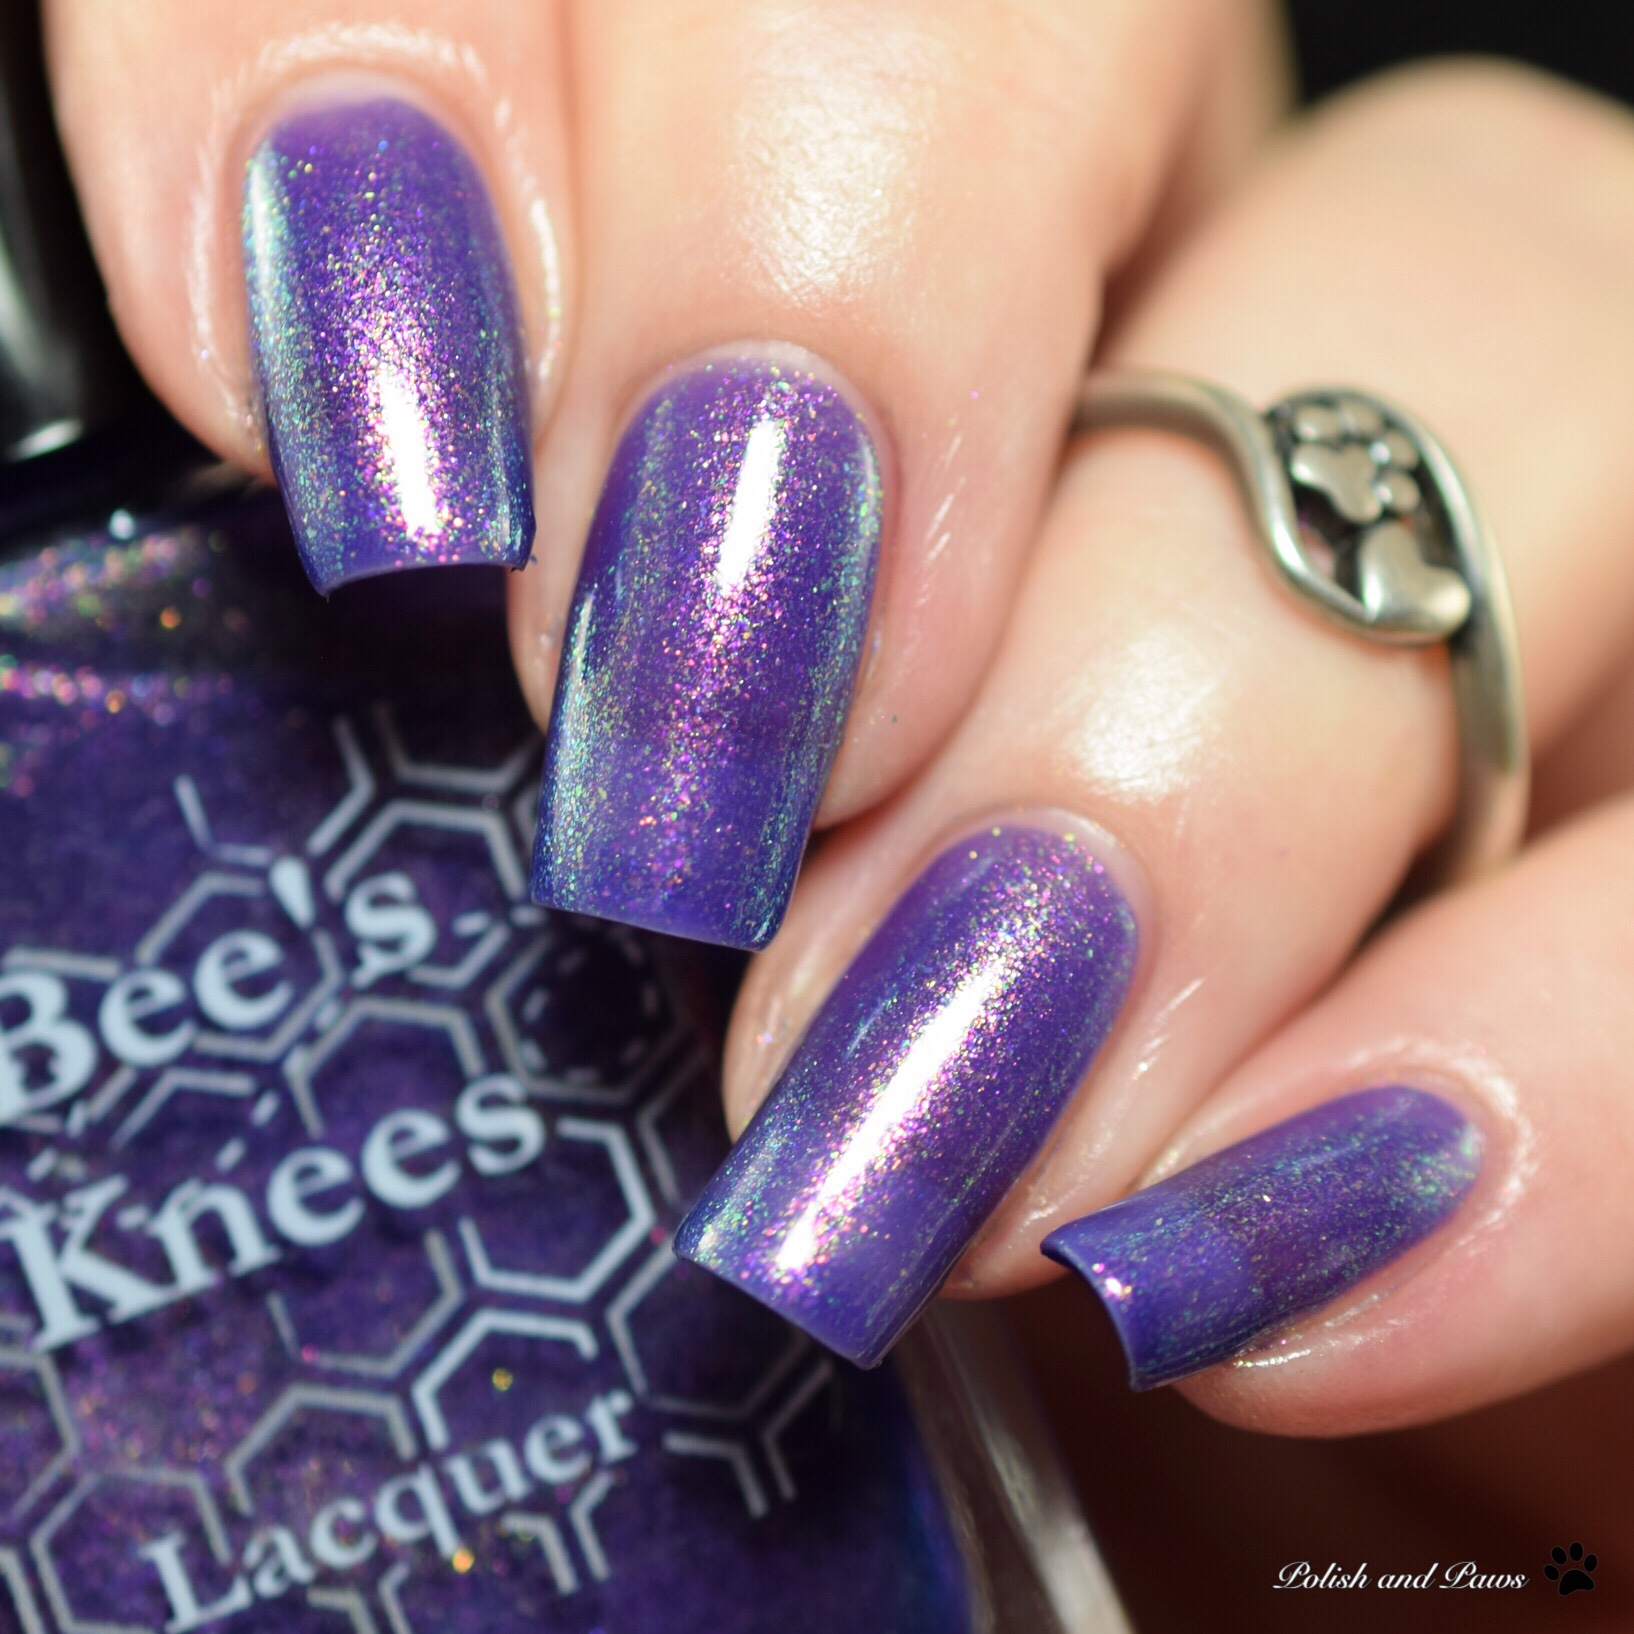 Bee's Knees Lacquer Skydancer